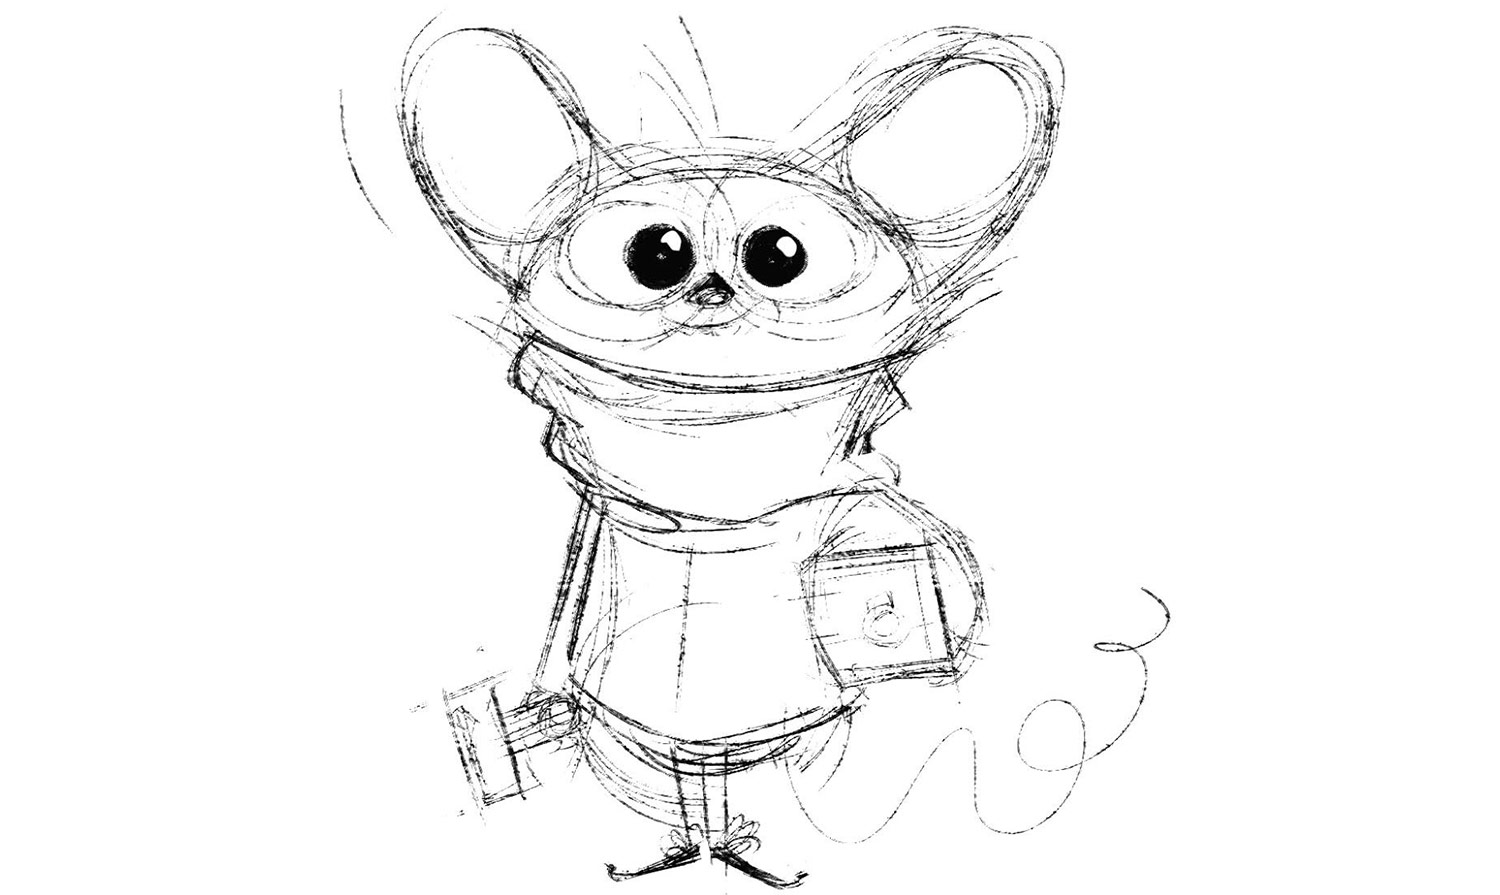 The drawing of the mouse that started it all.